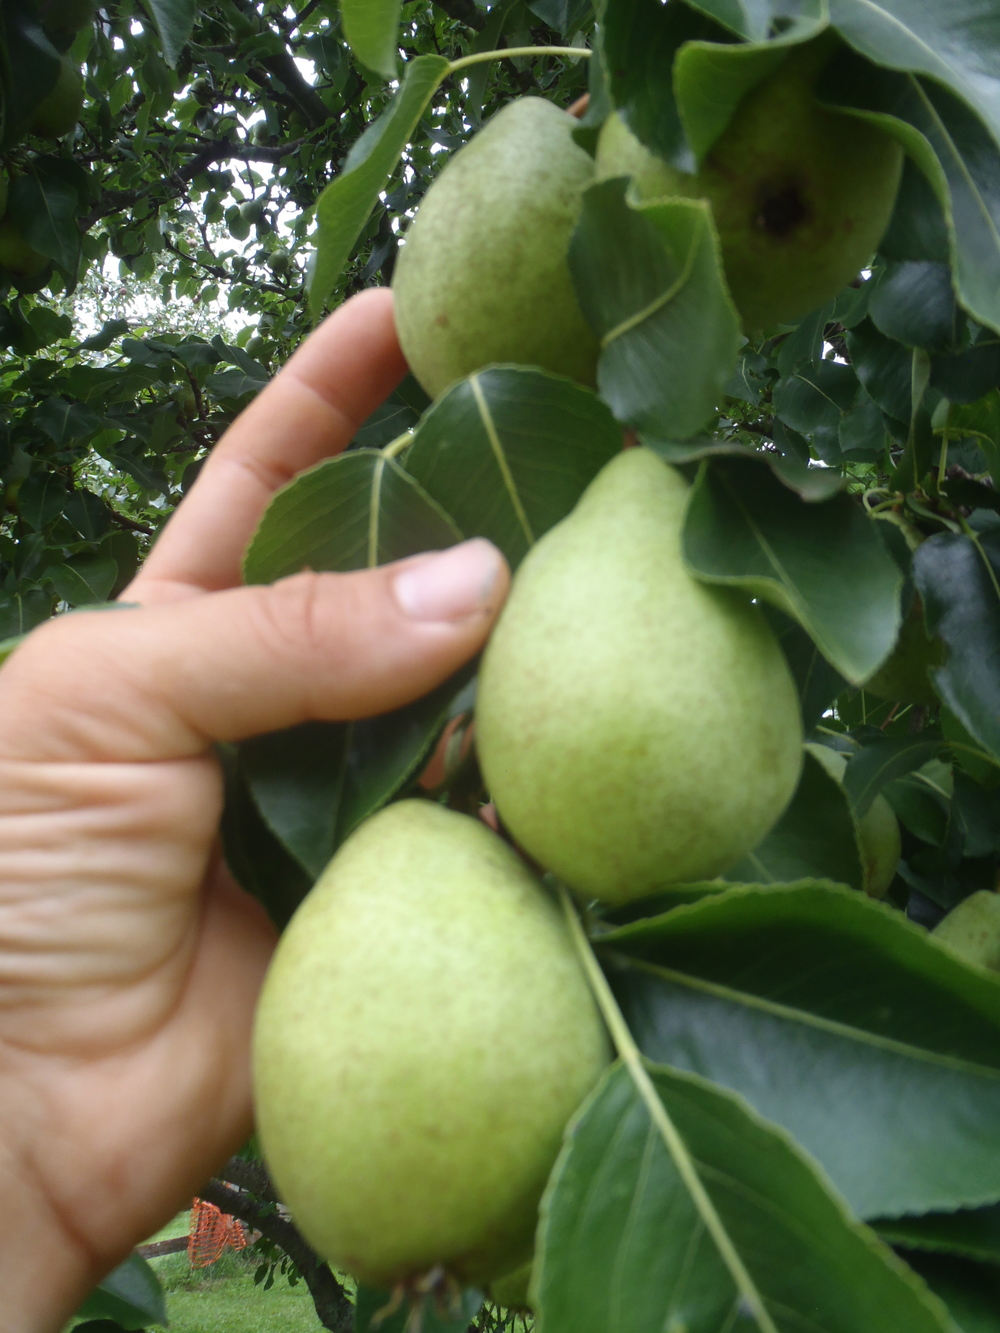 Pears sizing up on the tree - august 2015